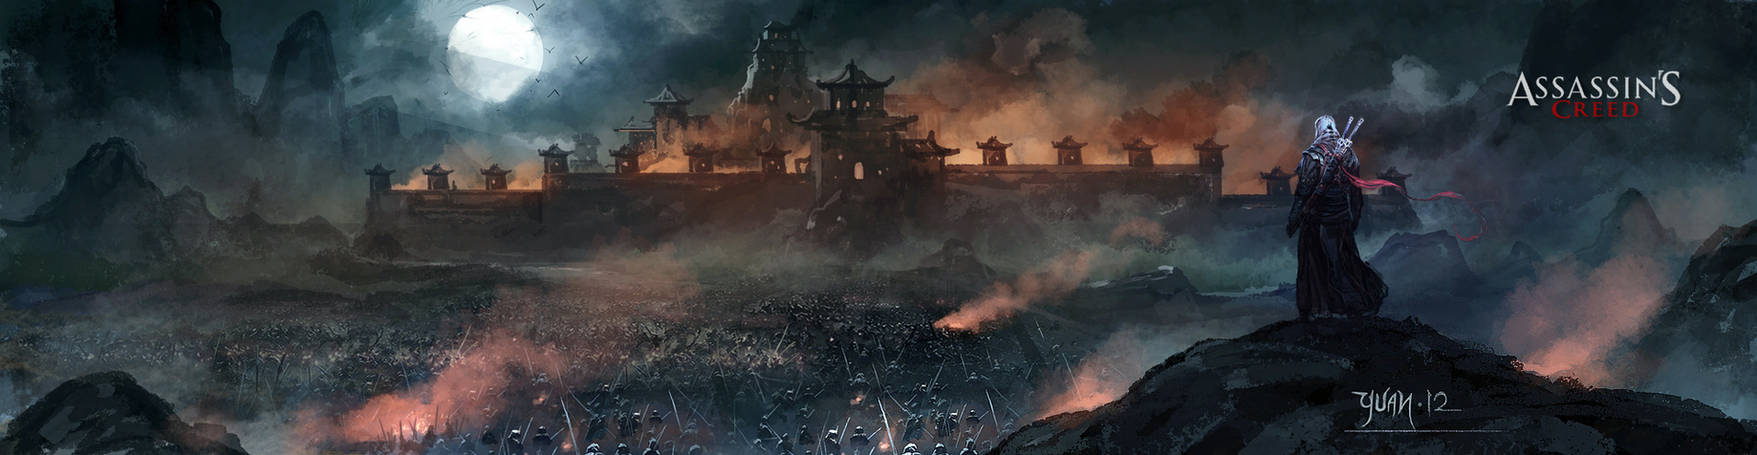 Assassin, the Incident of Xuanwu Gate